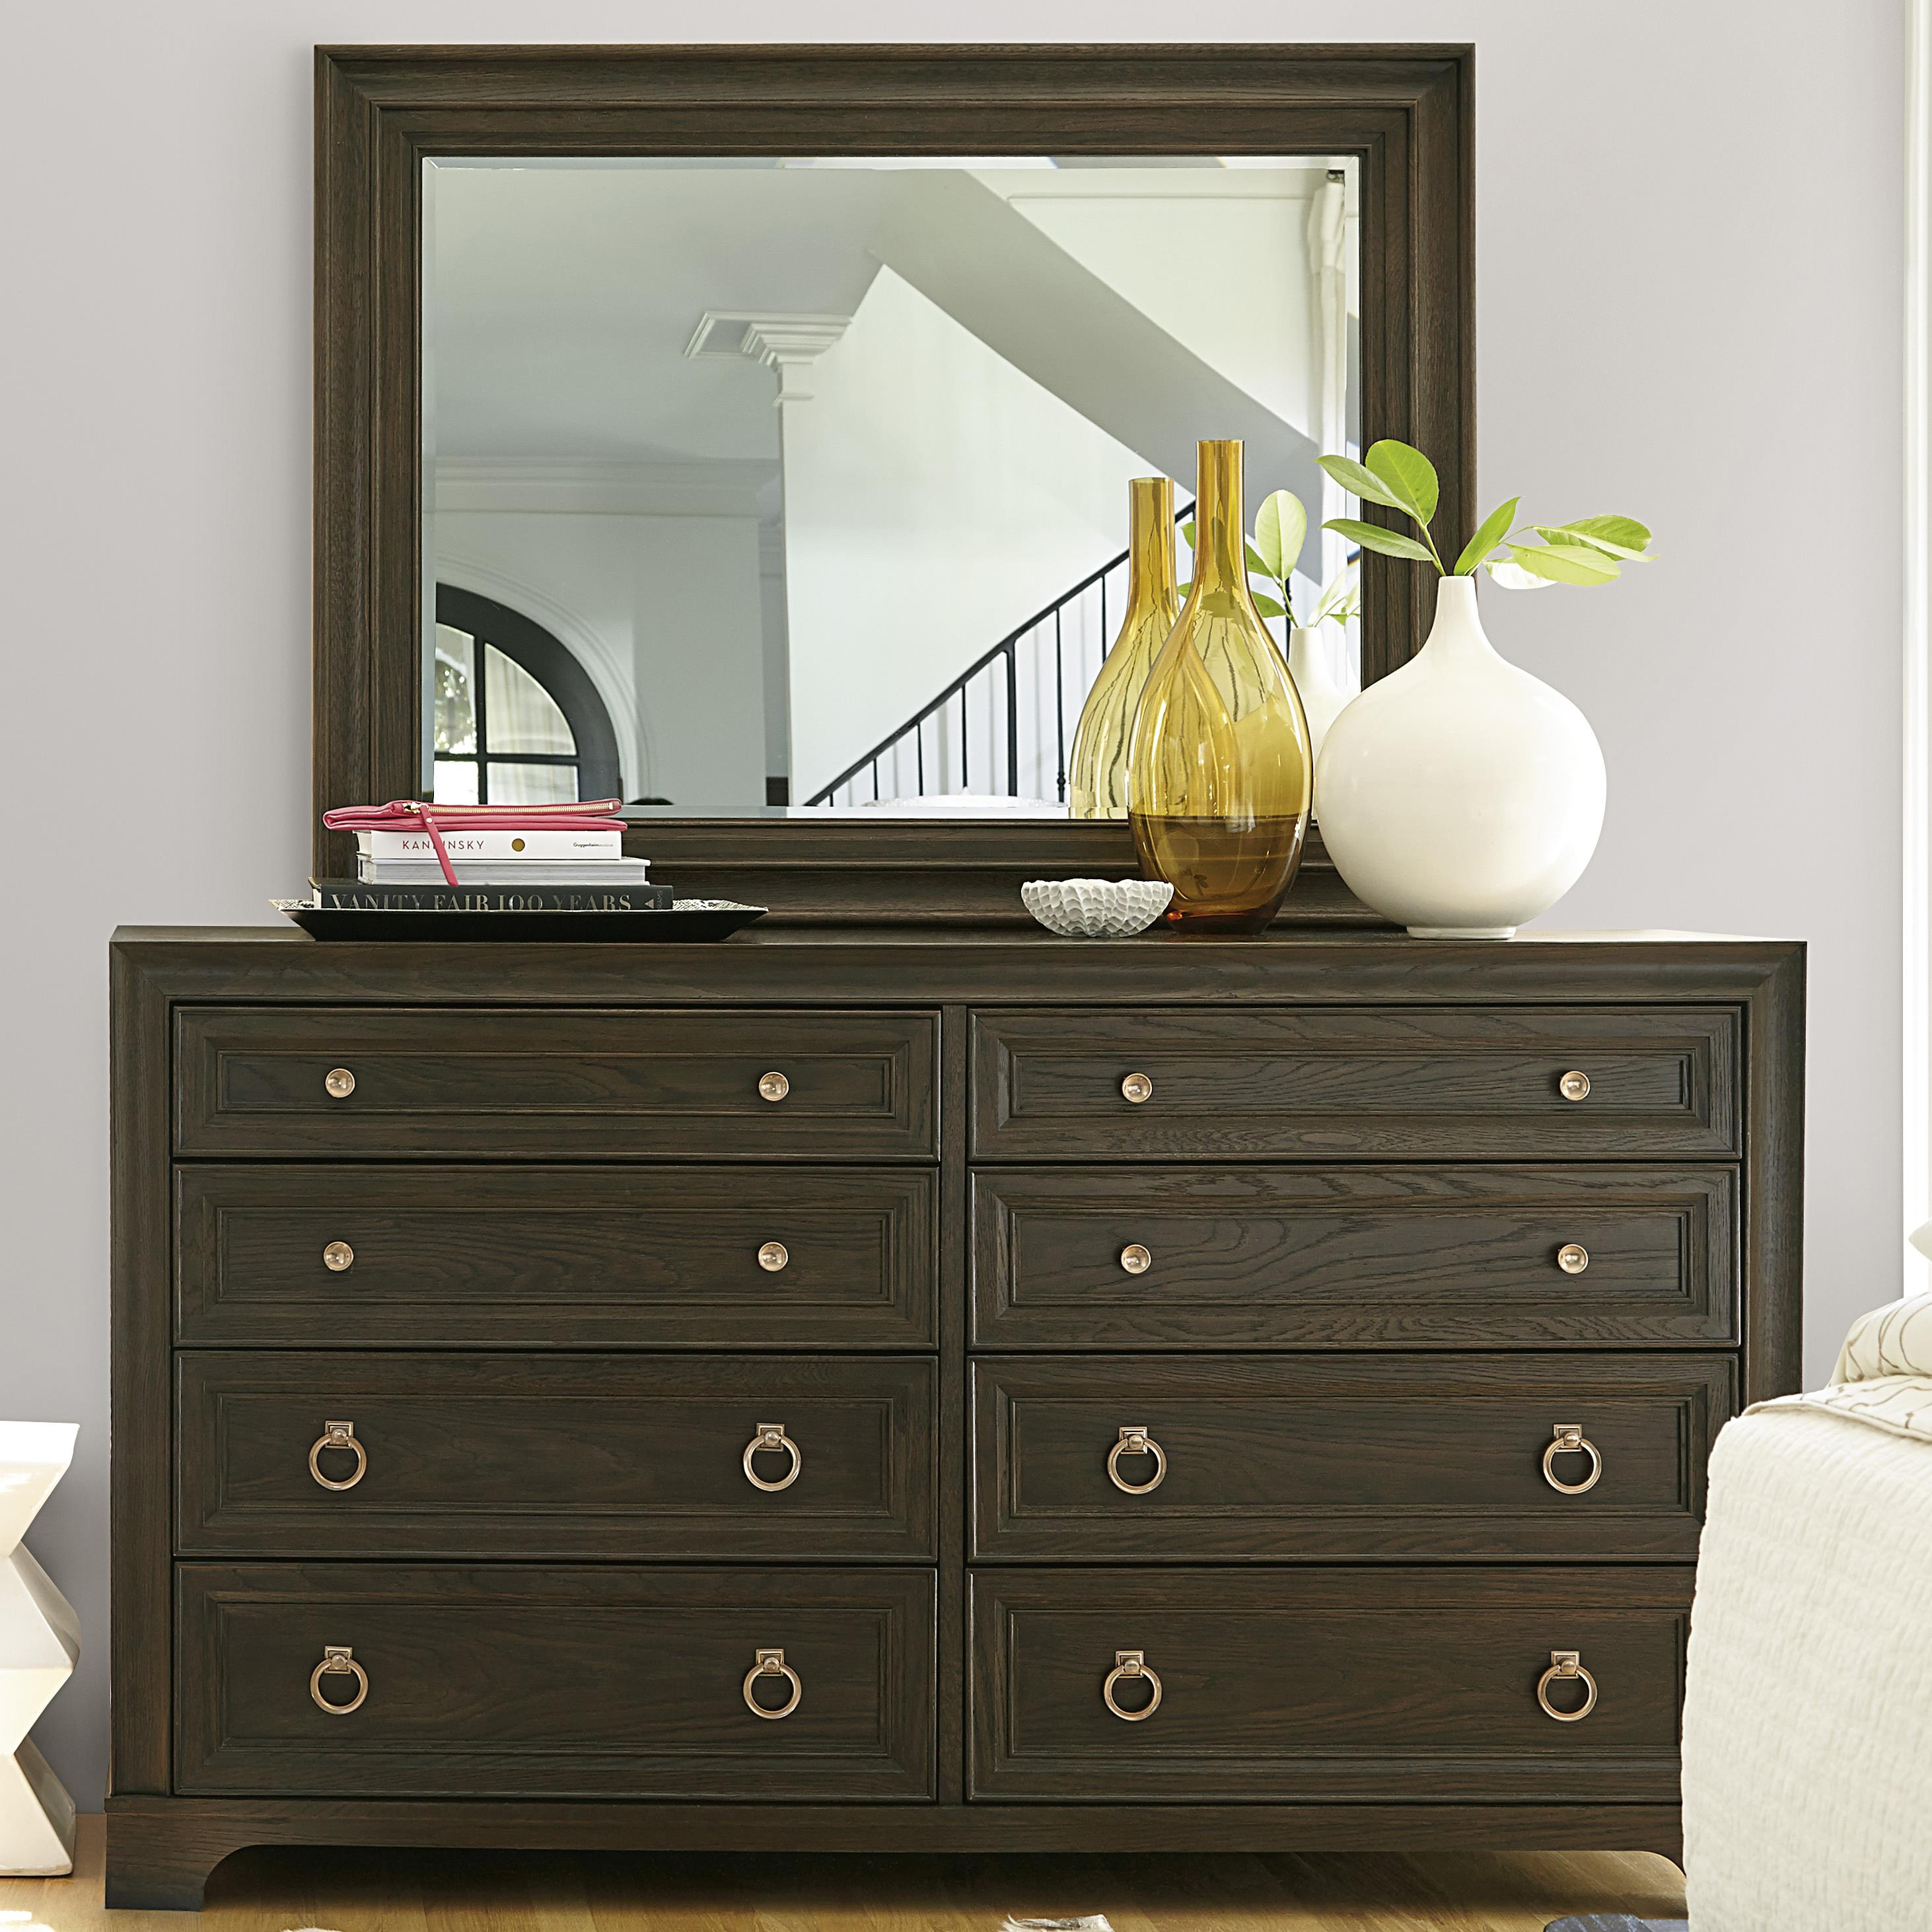 Universal California - Hollywood Hills Dresser and Mirror Set - Item Number: 475040+M